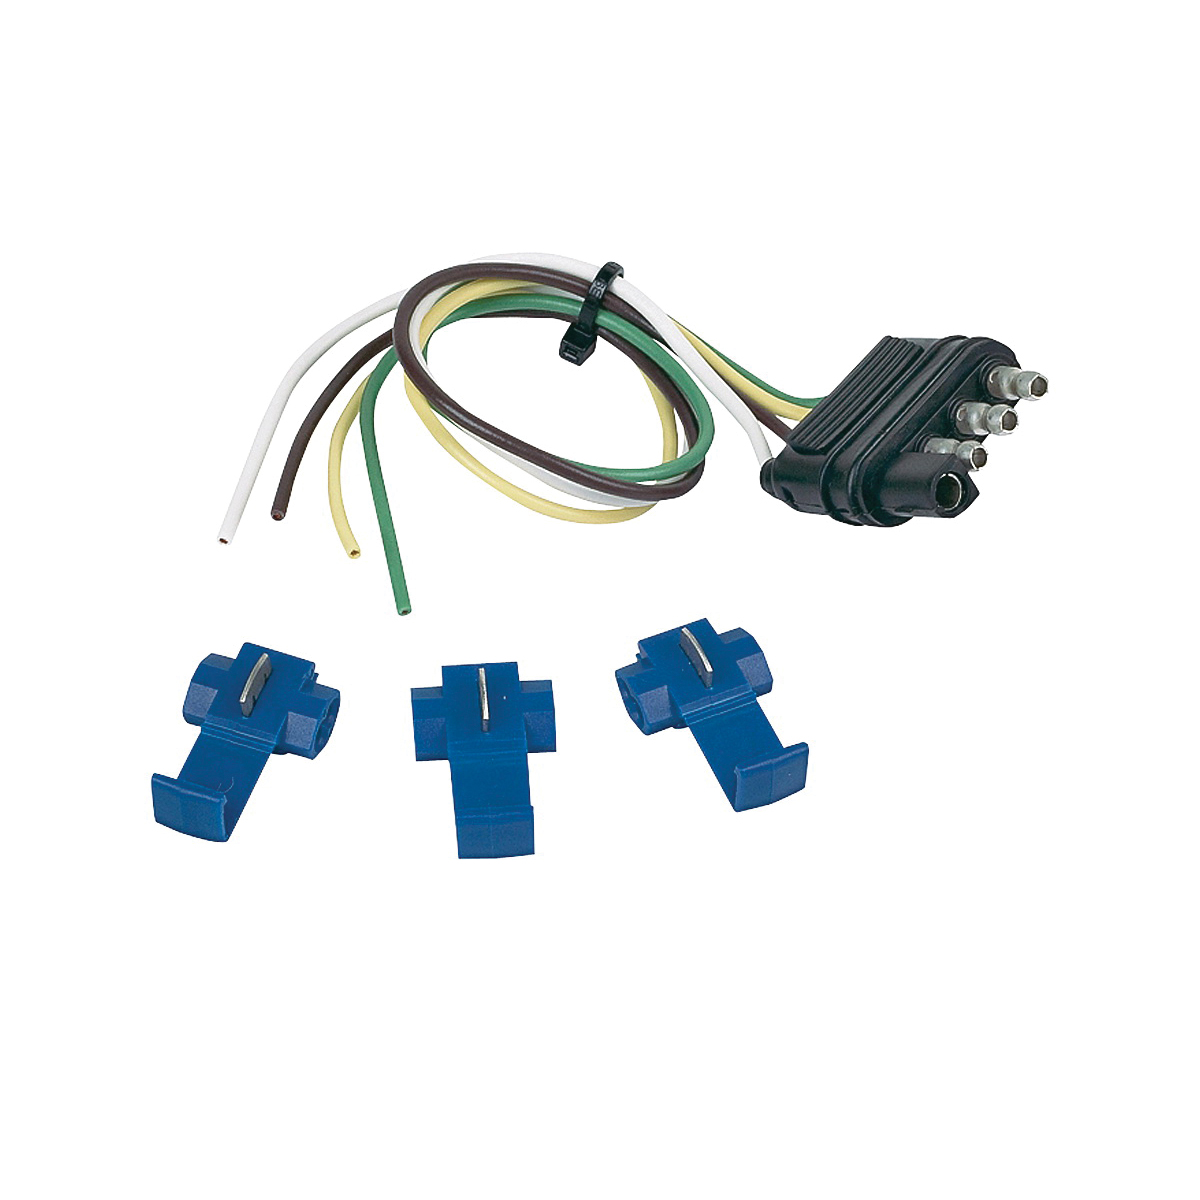 Picture of HOPKINS 48105 Trailer Wiring Kit, 12 in L